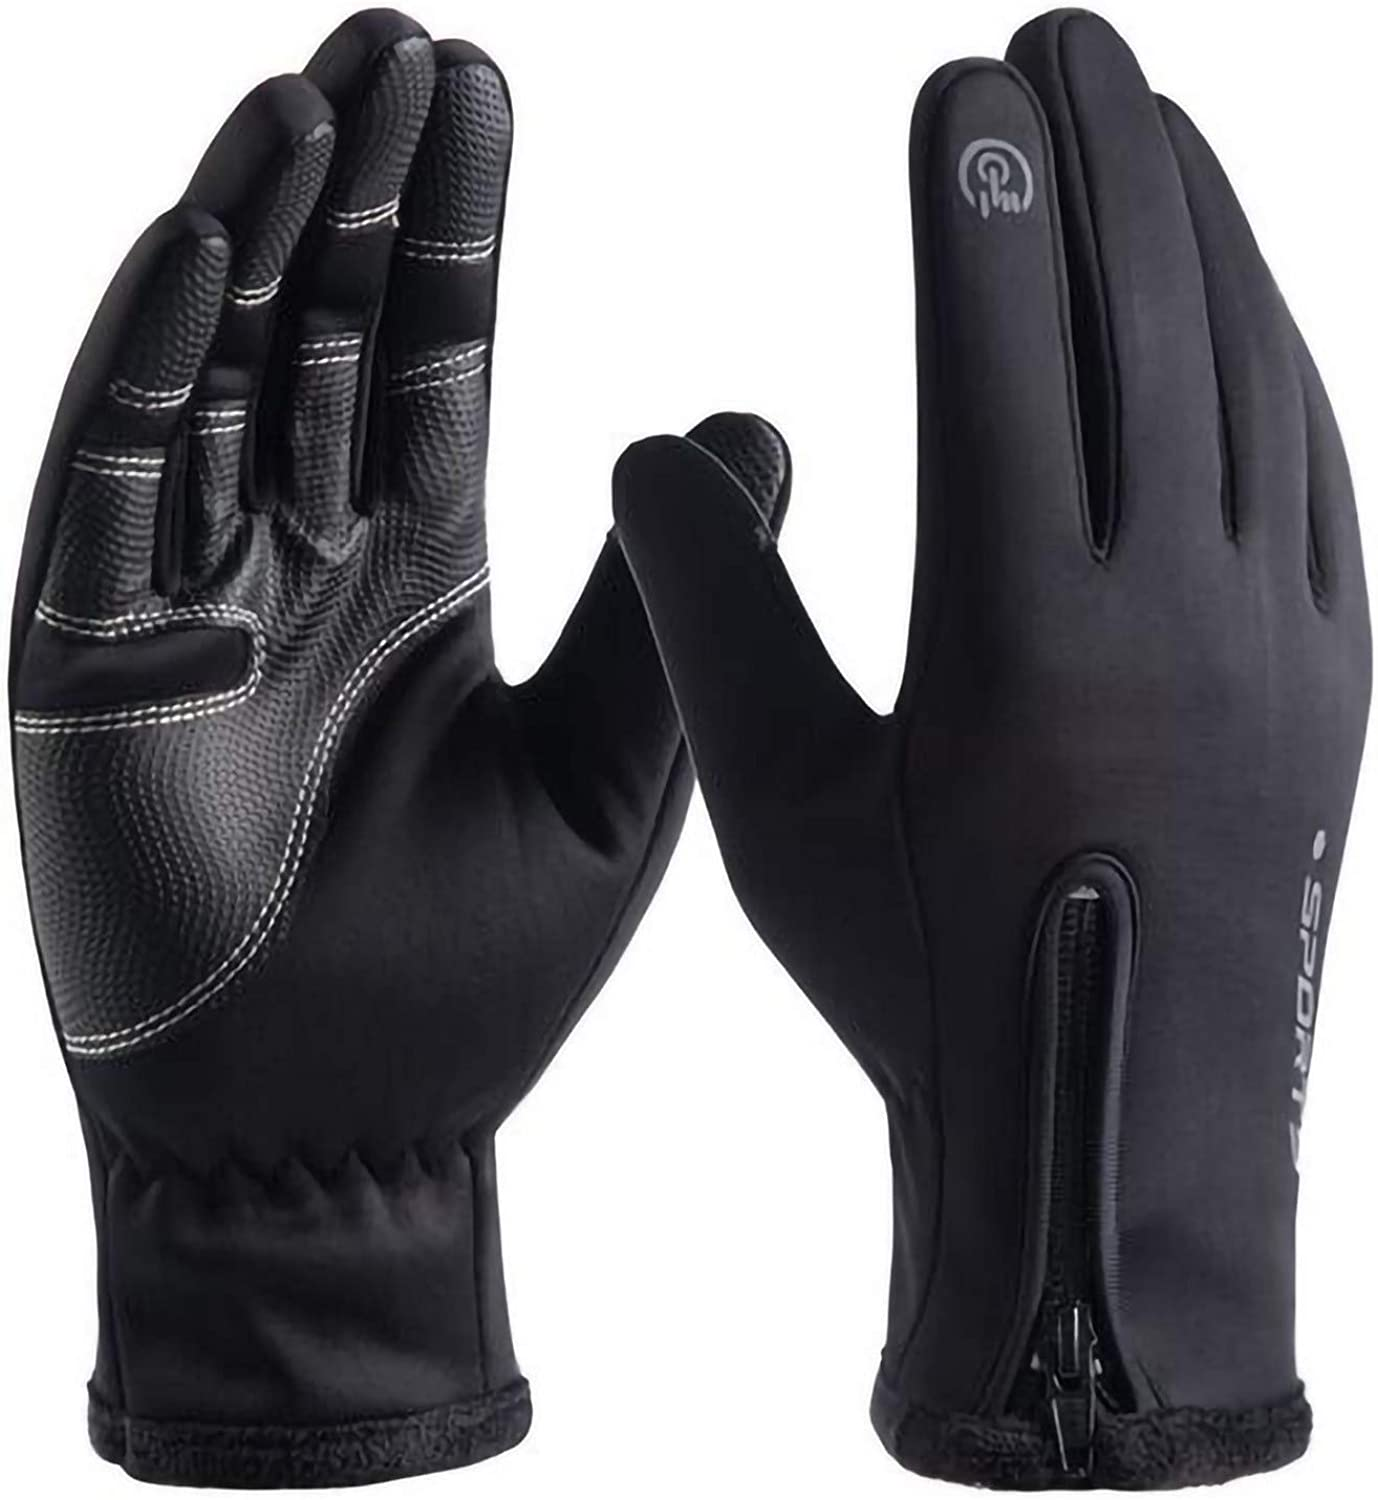 Winter Warm Gloves for Men and Women Touch Screen Anti-Slip Windproof Outdoor Riding Sport Plush Mountaineering Ski Gloves